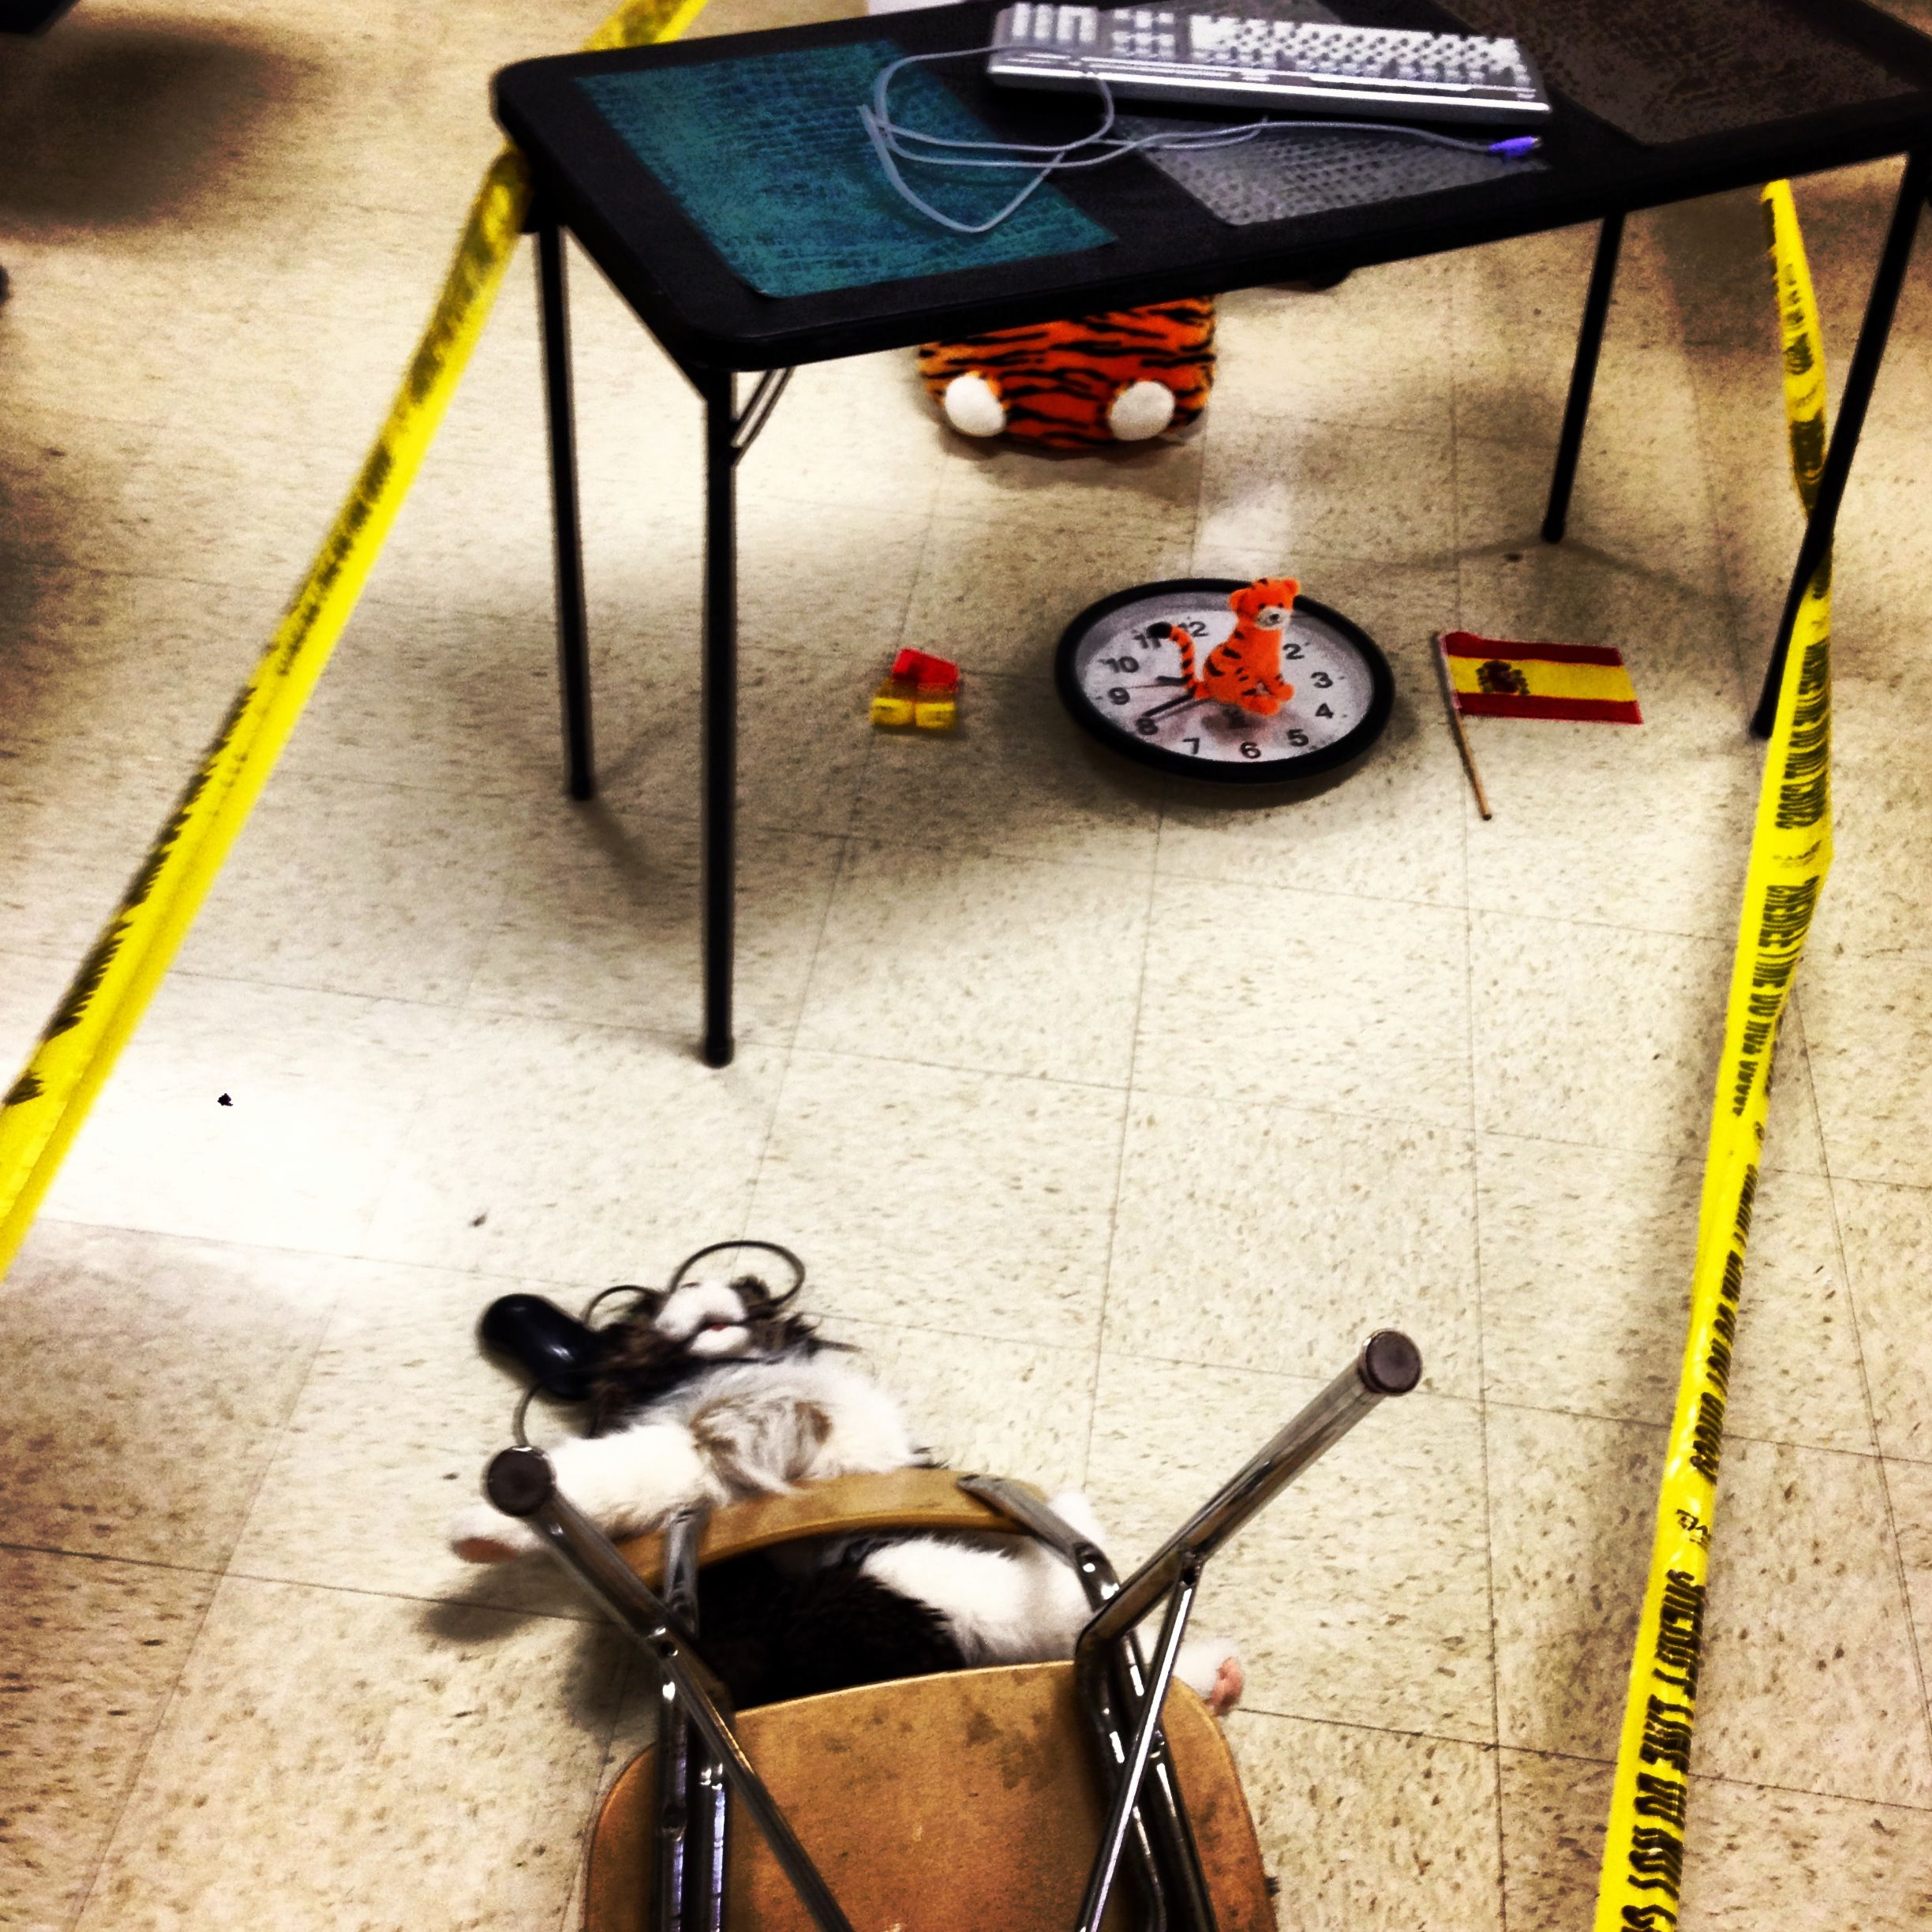 007 Preposition crime scene in Spanish class. Students use